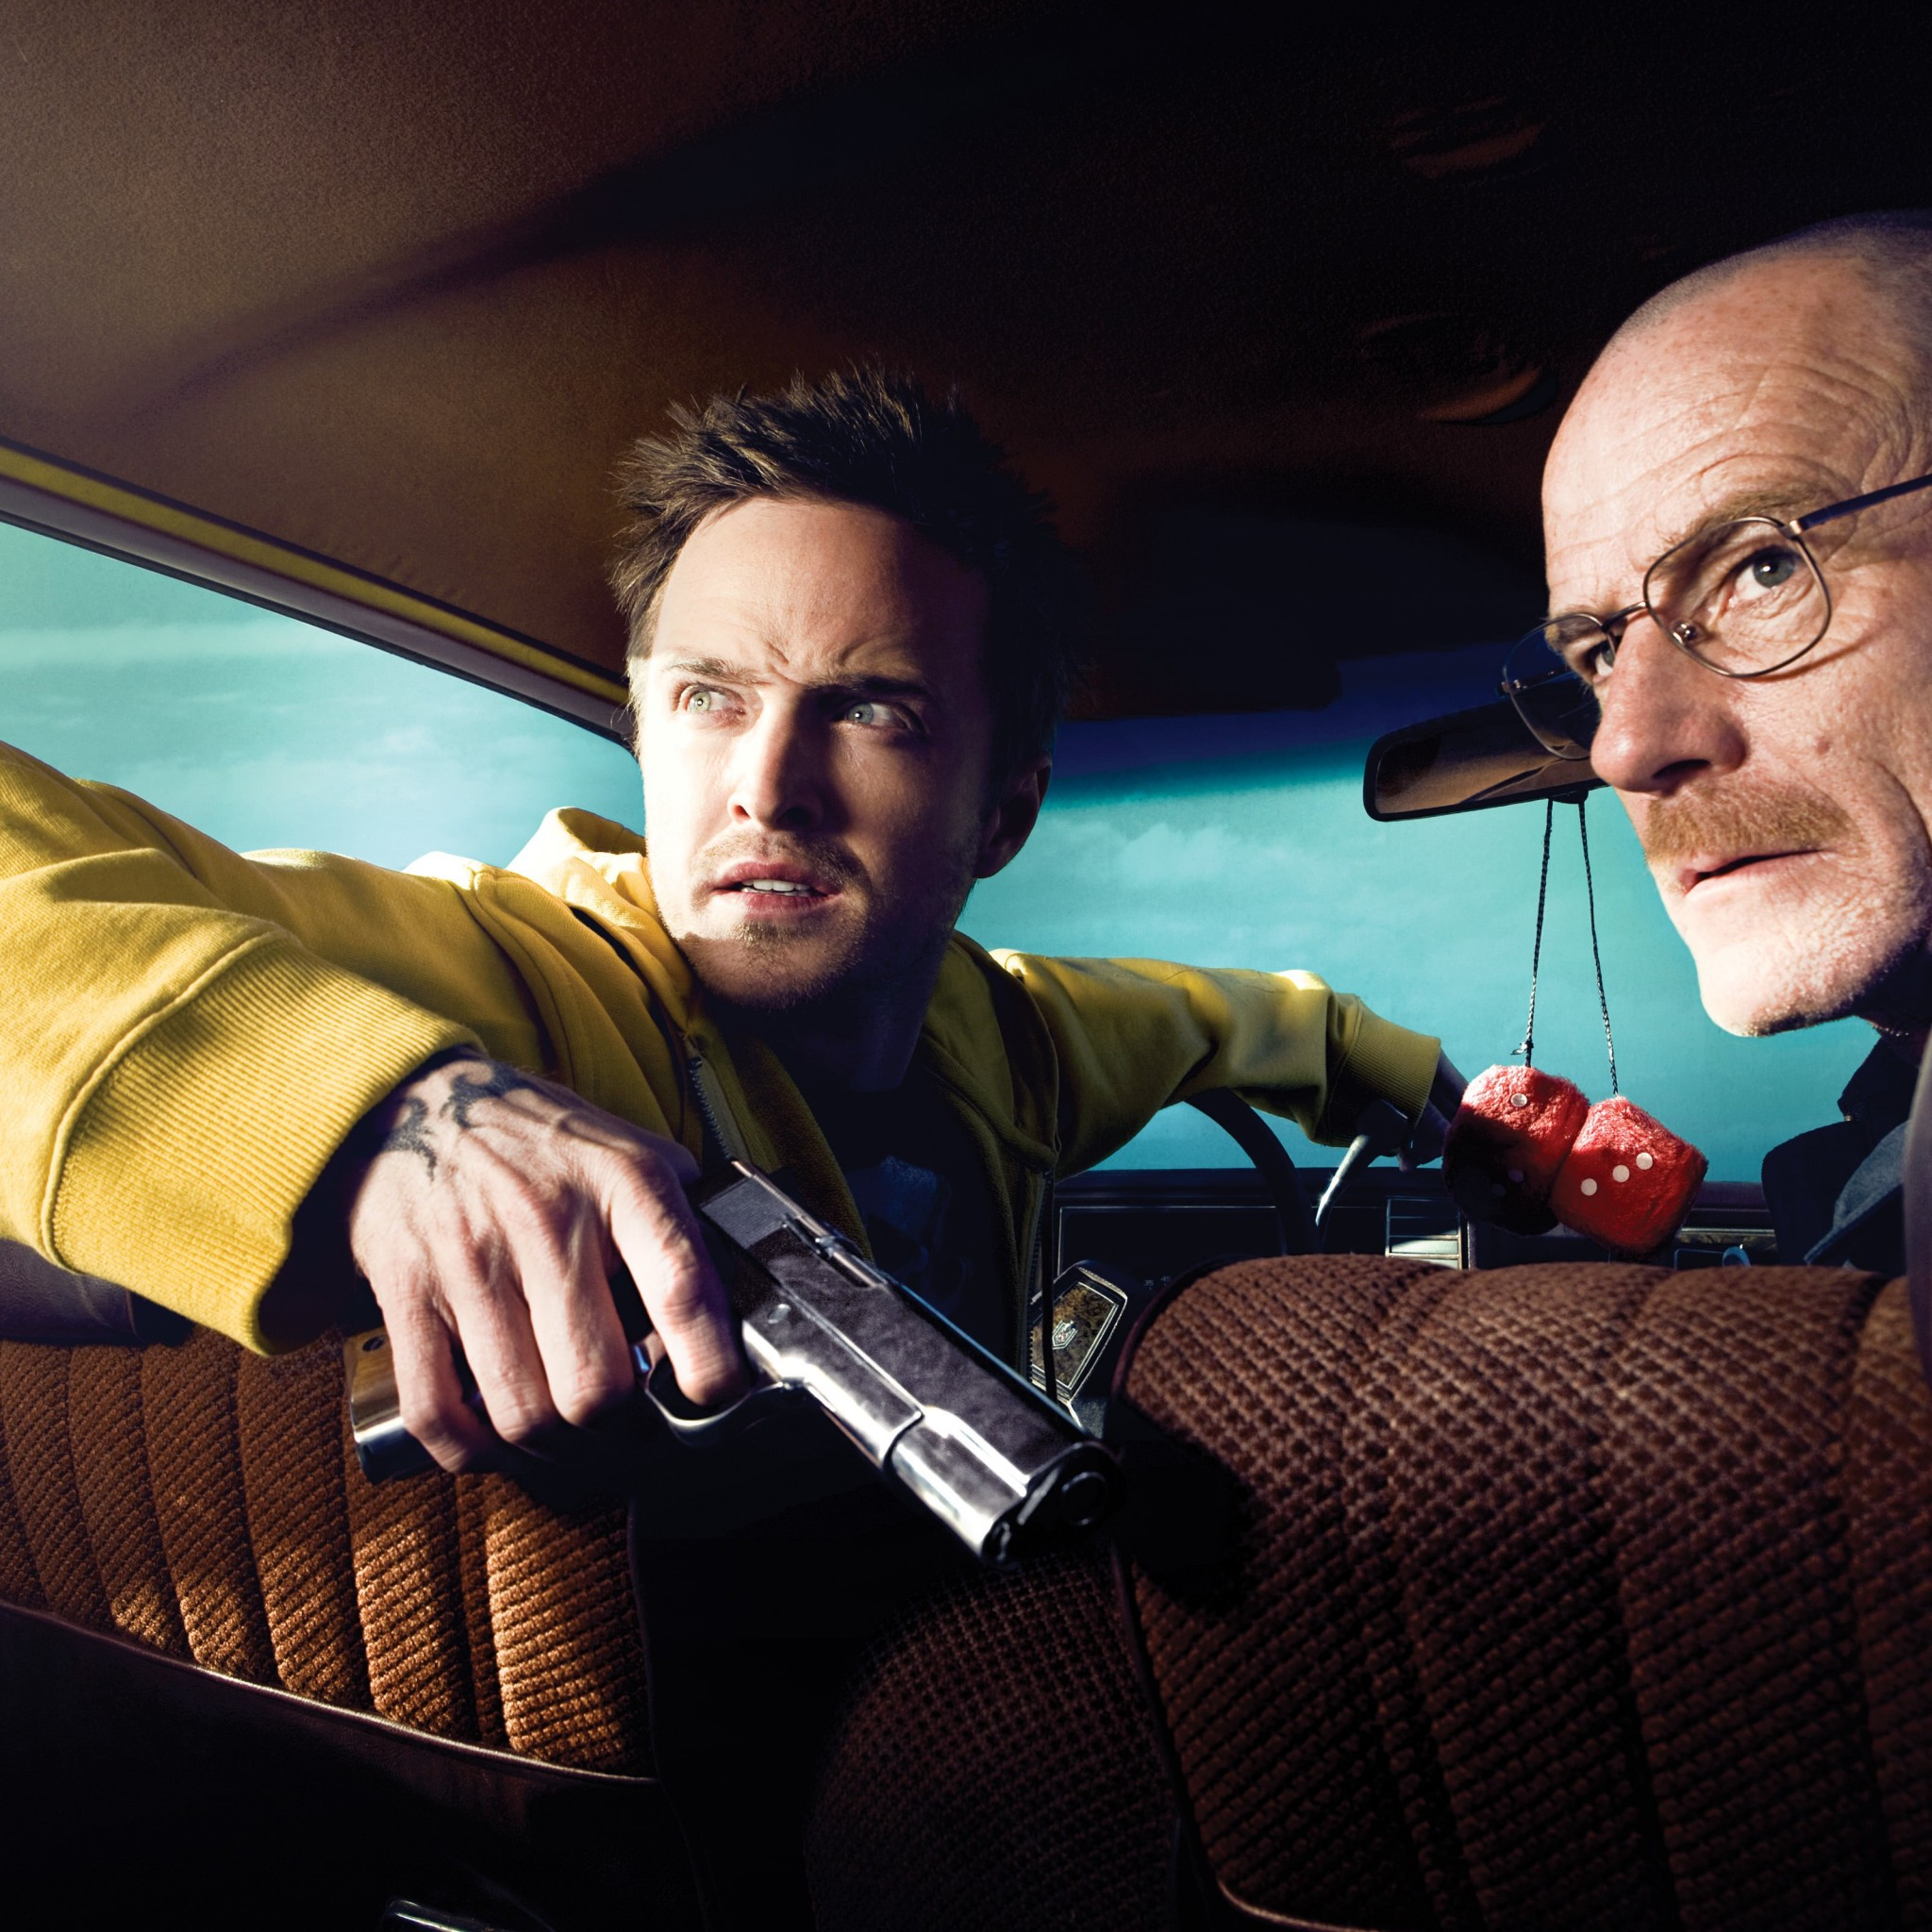 Breaking Bad - Jesse Pinkman & Walter White Wallpaper for Google Nexus 9